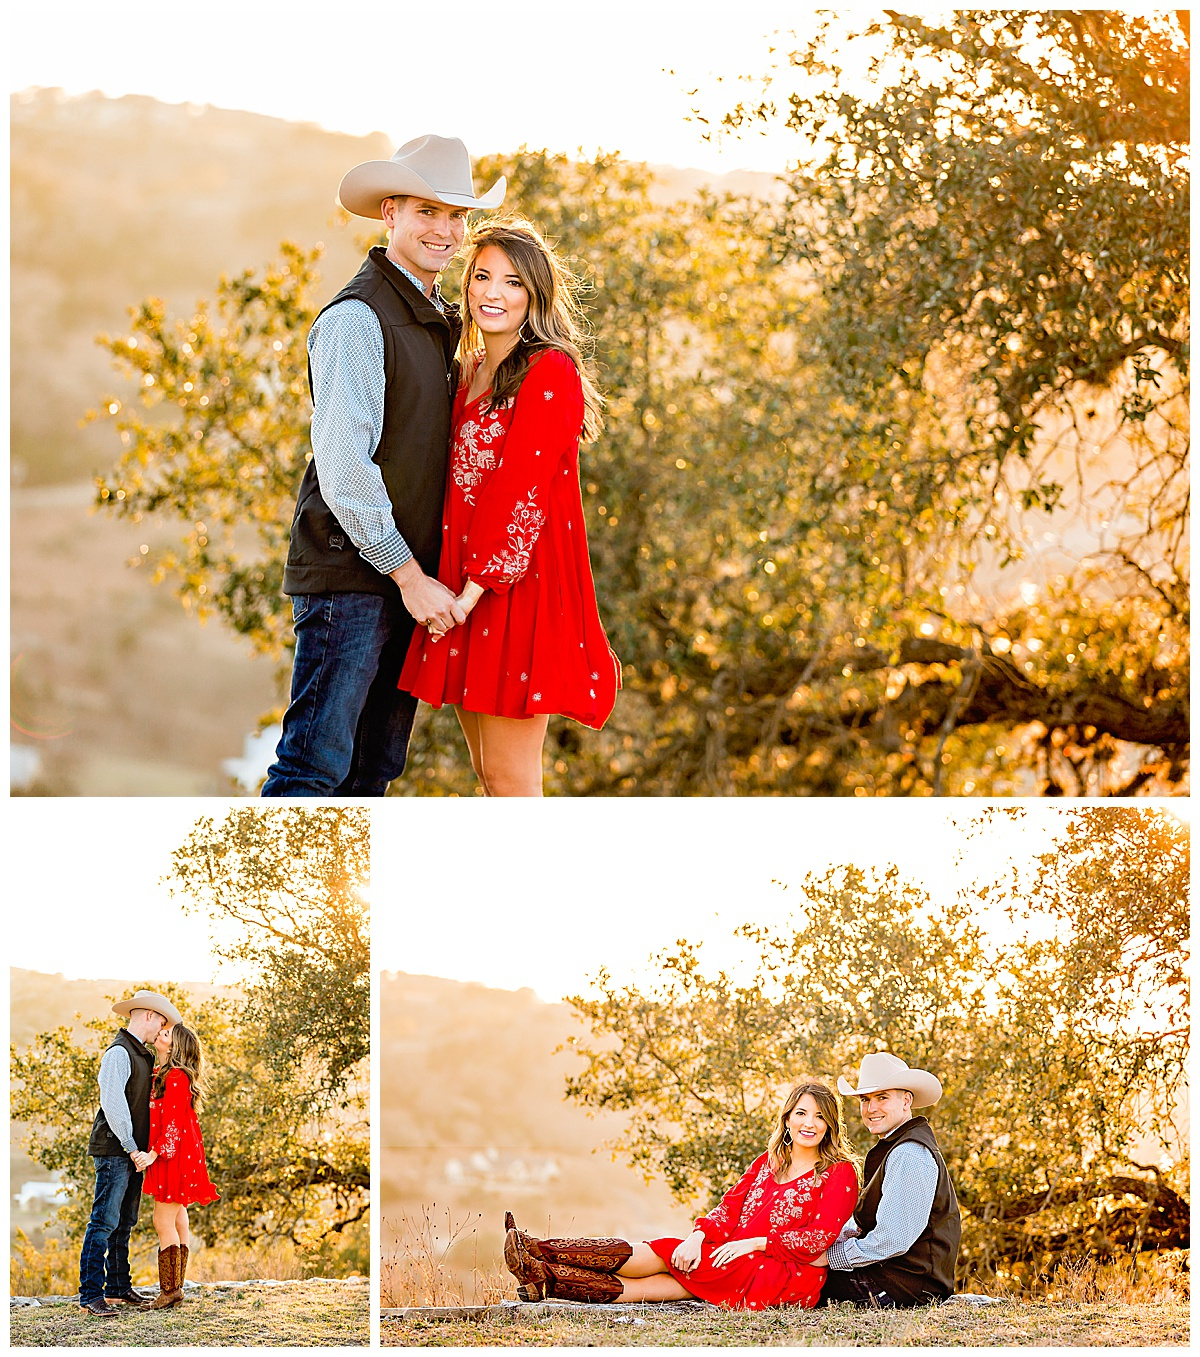 South-Texas-Wedding-Photographer-Engagement-Photos-Happy-H-Ranch-Comfort-Texas-Sunset-Couples-Carly-Barton-Photography-Justin-Erica_0011.jpg